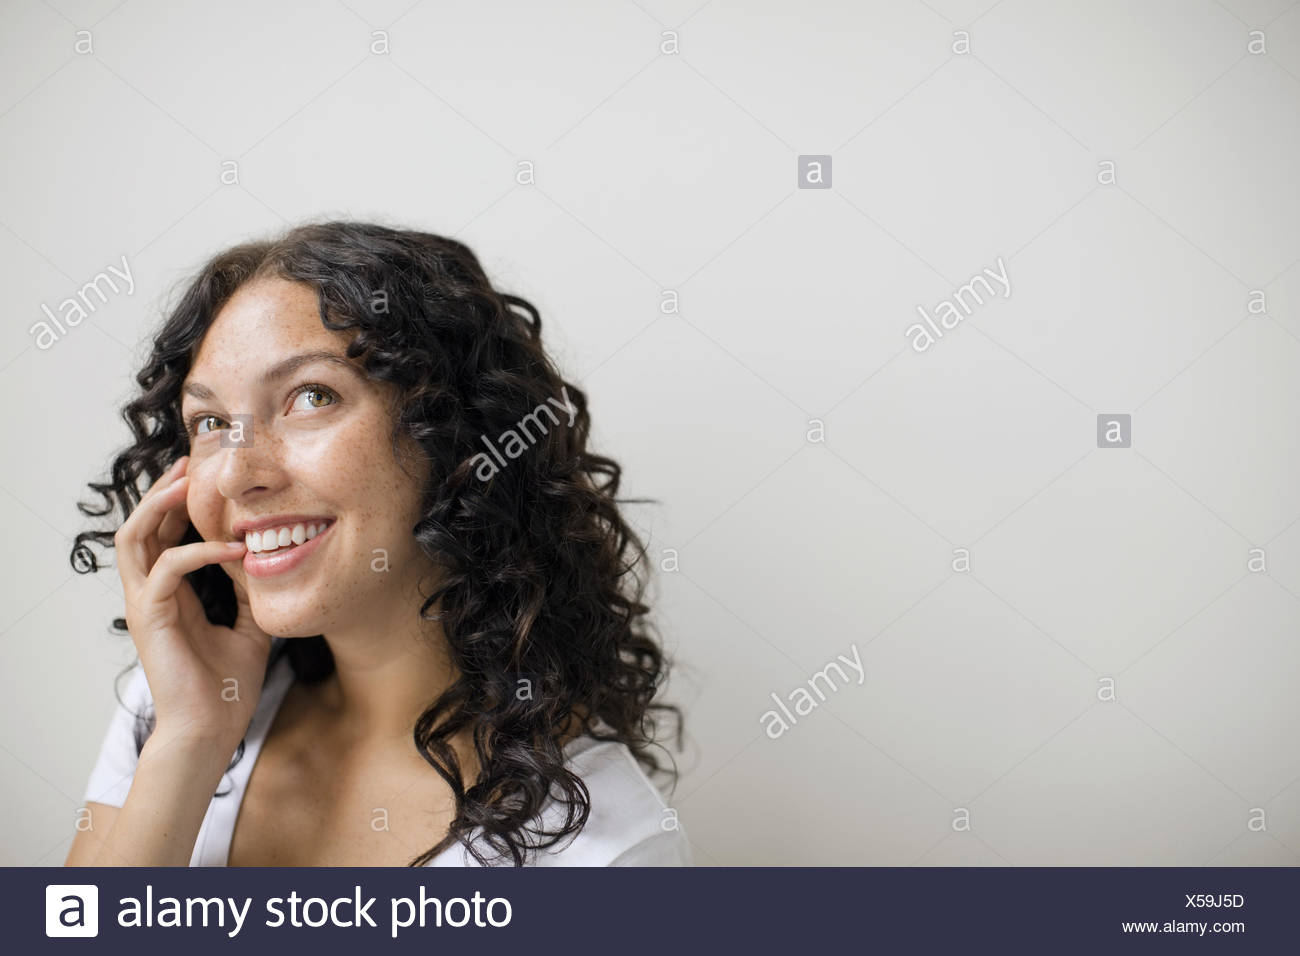 Curious woman with curly black hair - Stock Image